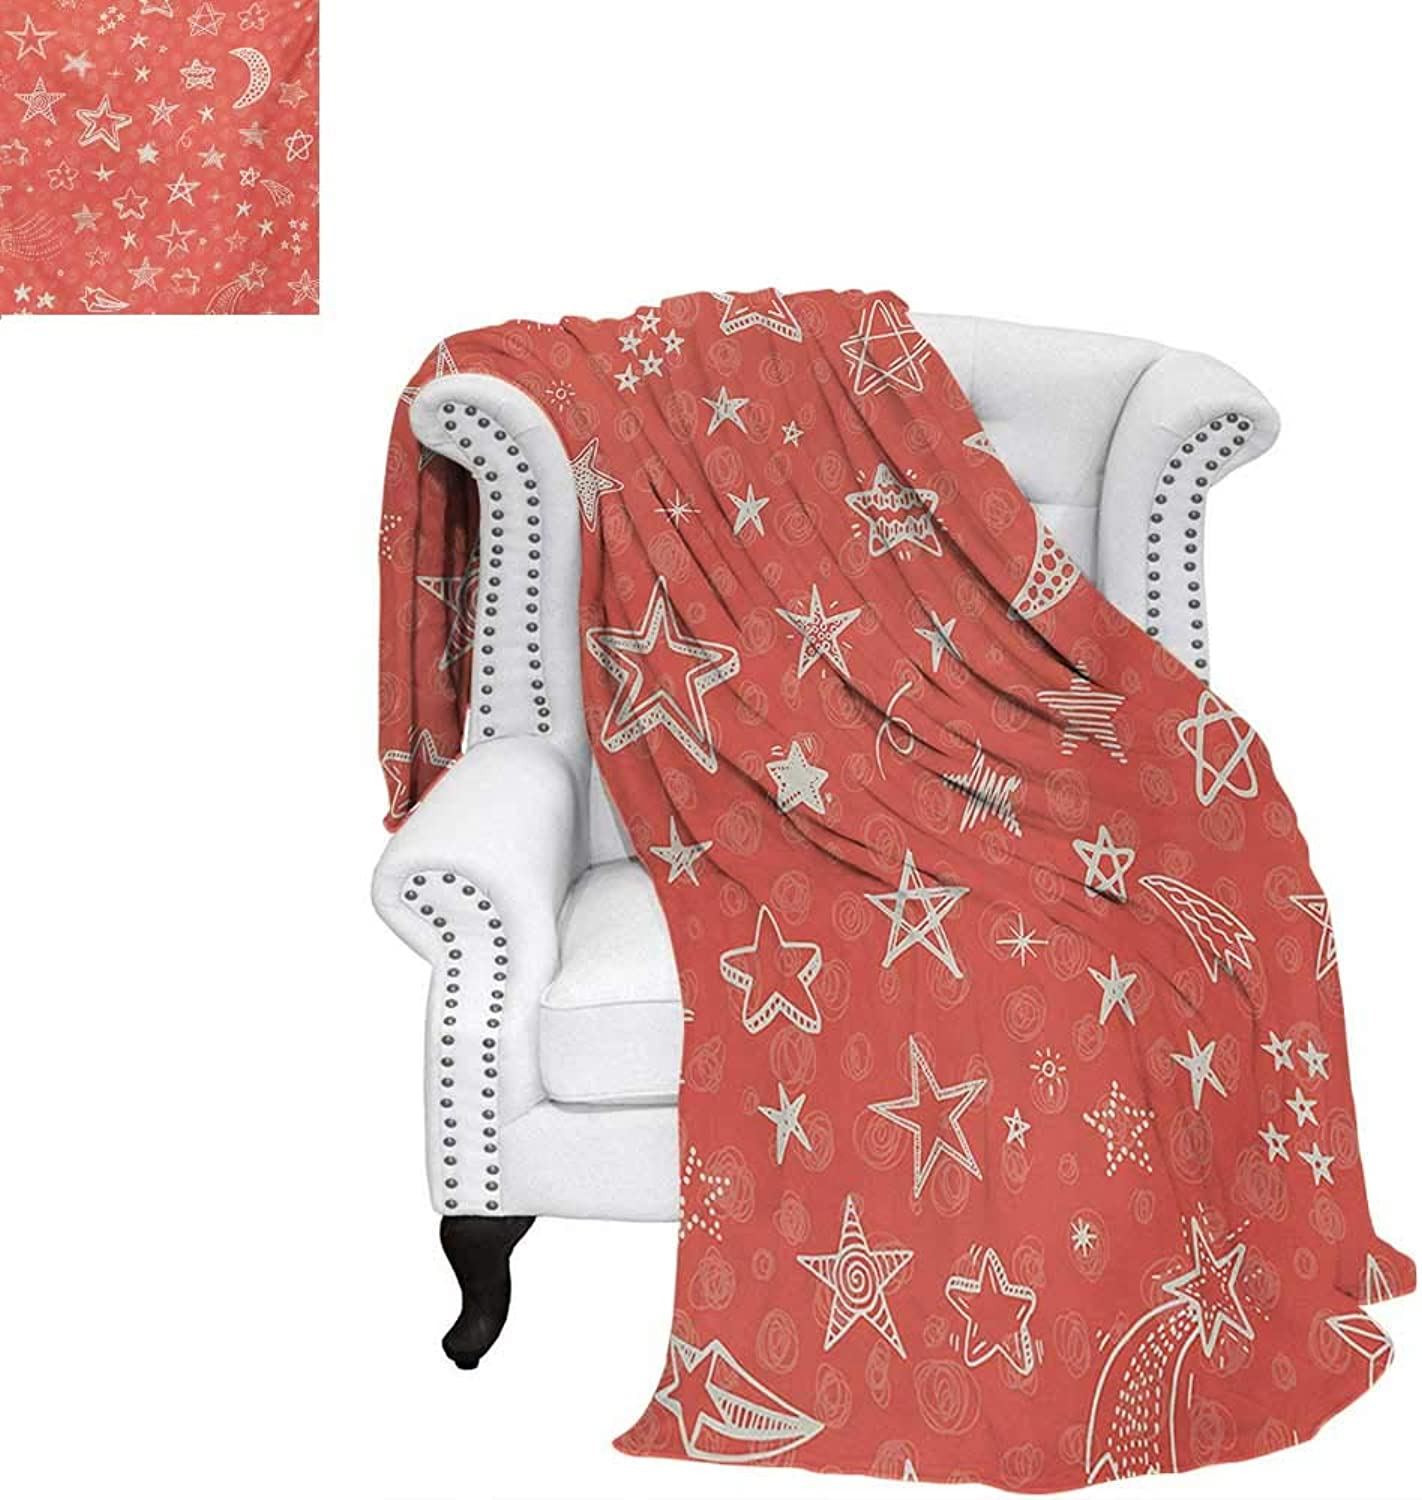 Warmfamily Star Digital Printing Blanket Moon and Stars Theme Pattern Starry Night Shooting Stars Space Galaxy Kids Style Lightweight Blanket 60 x50  Coral White